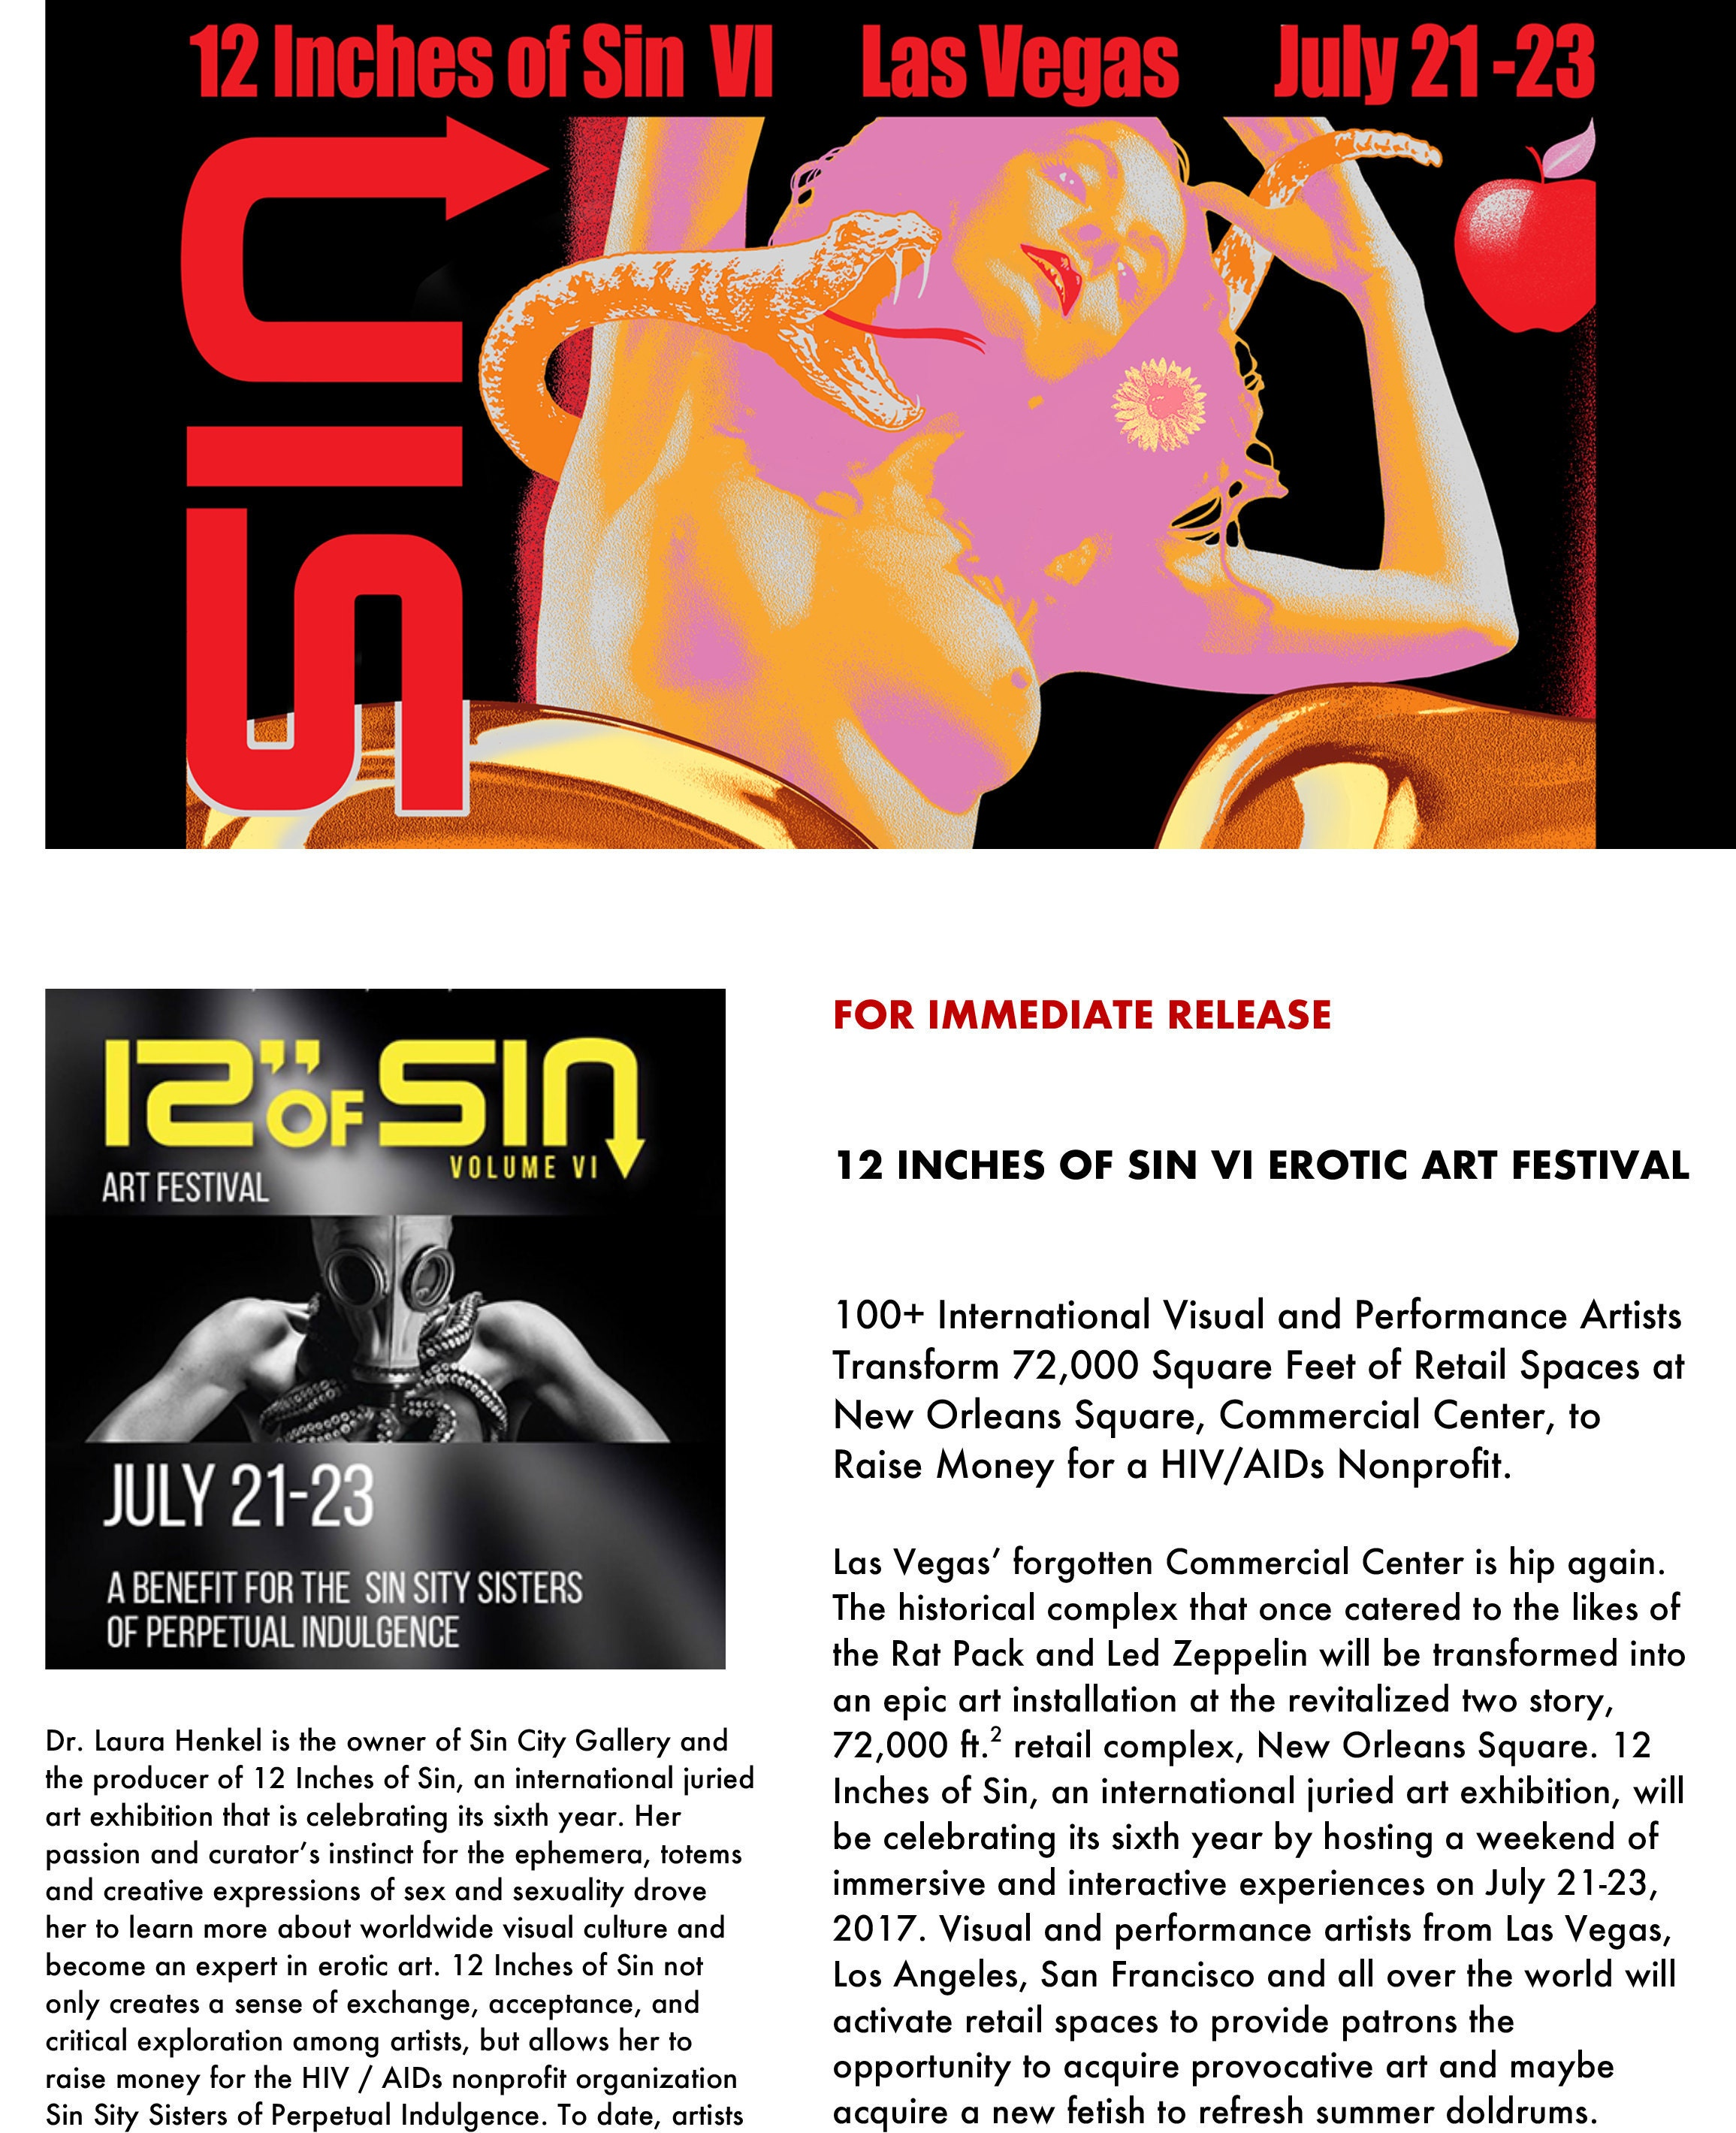 12 Inches of Sin VI Press Release Page 1